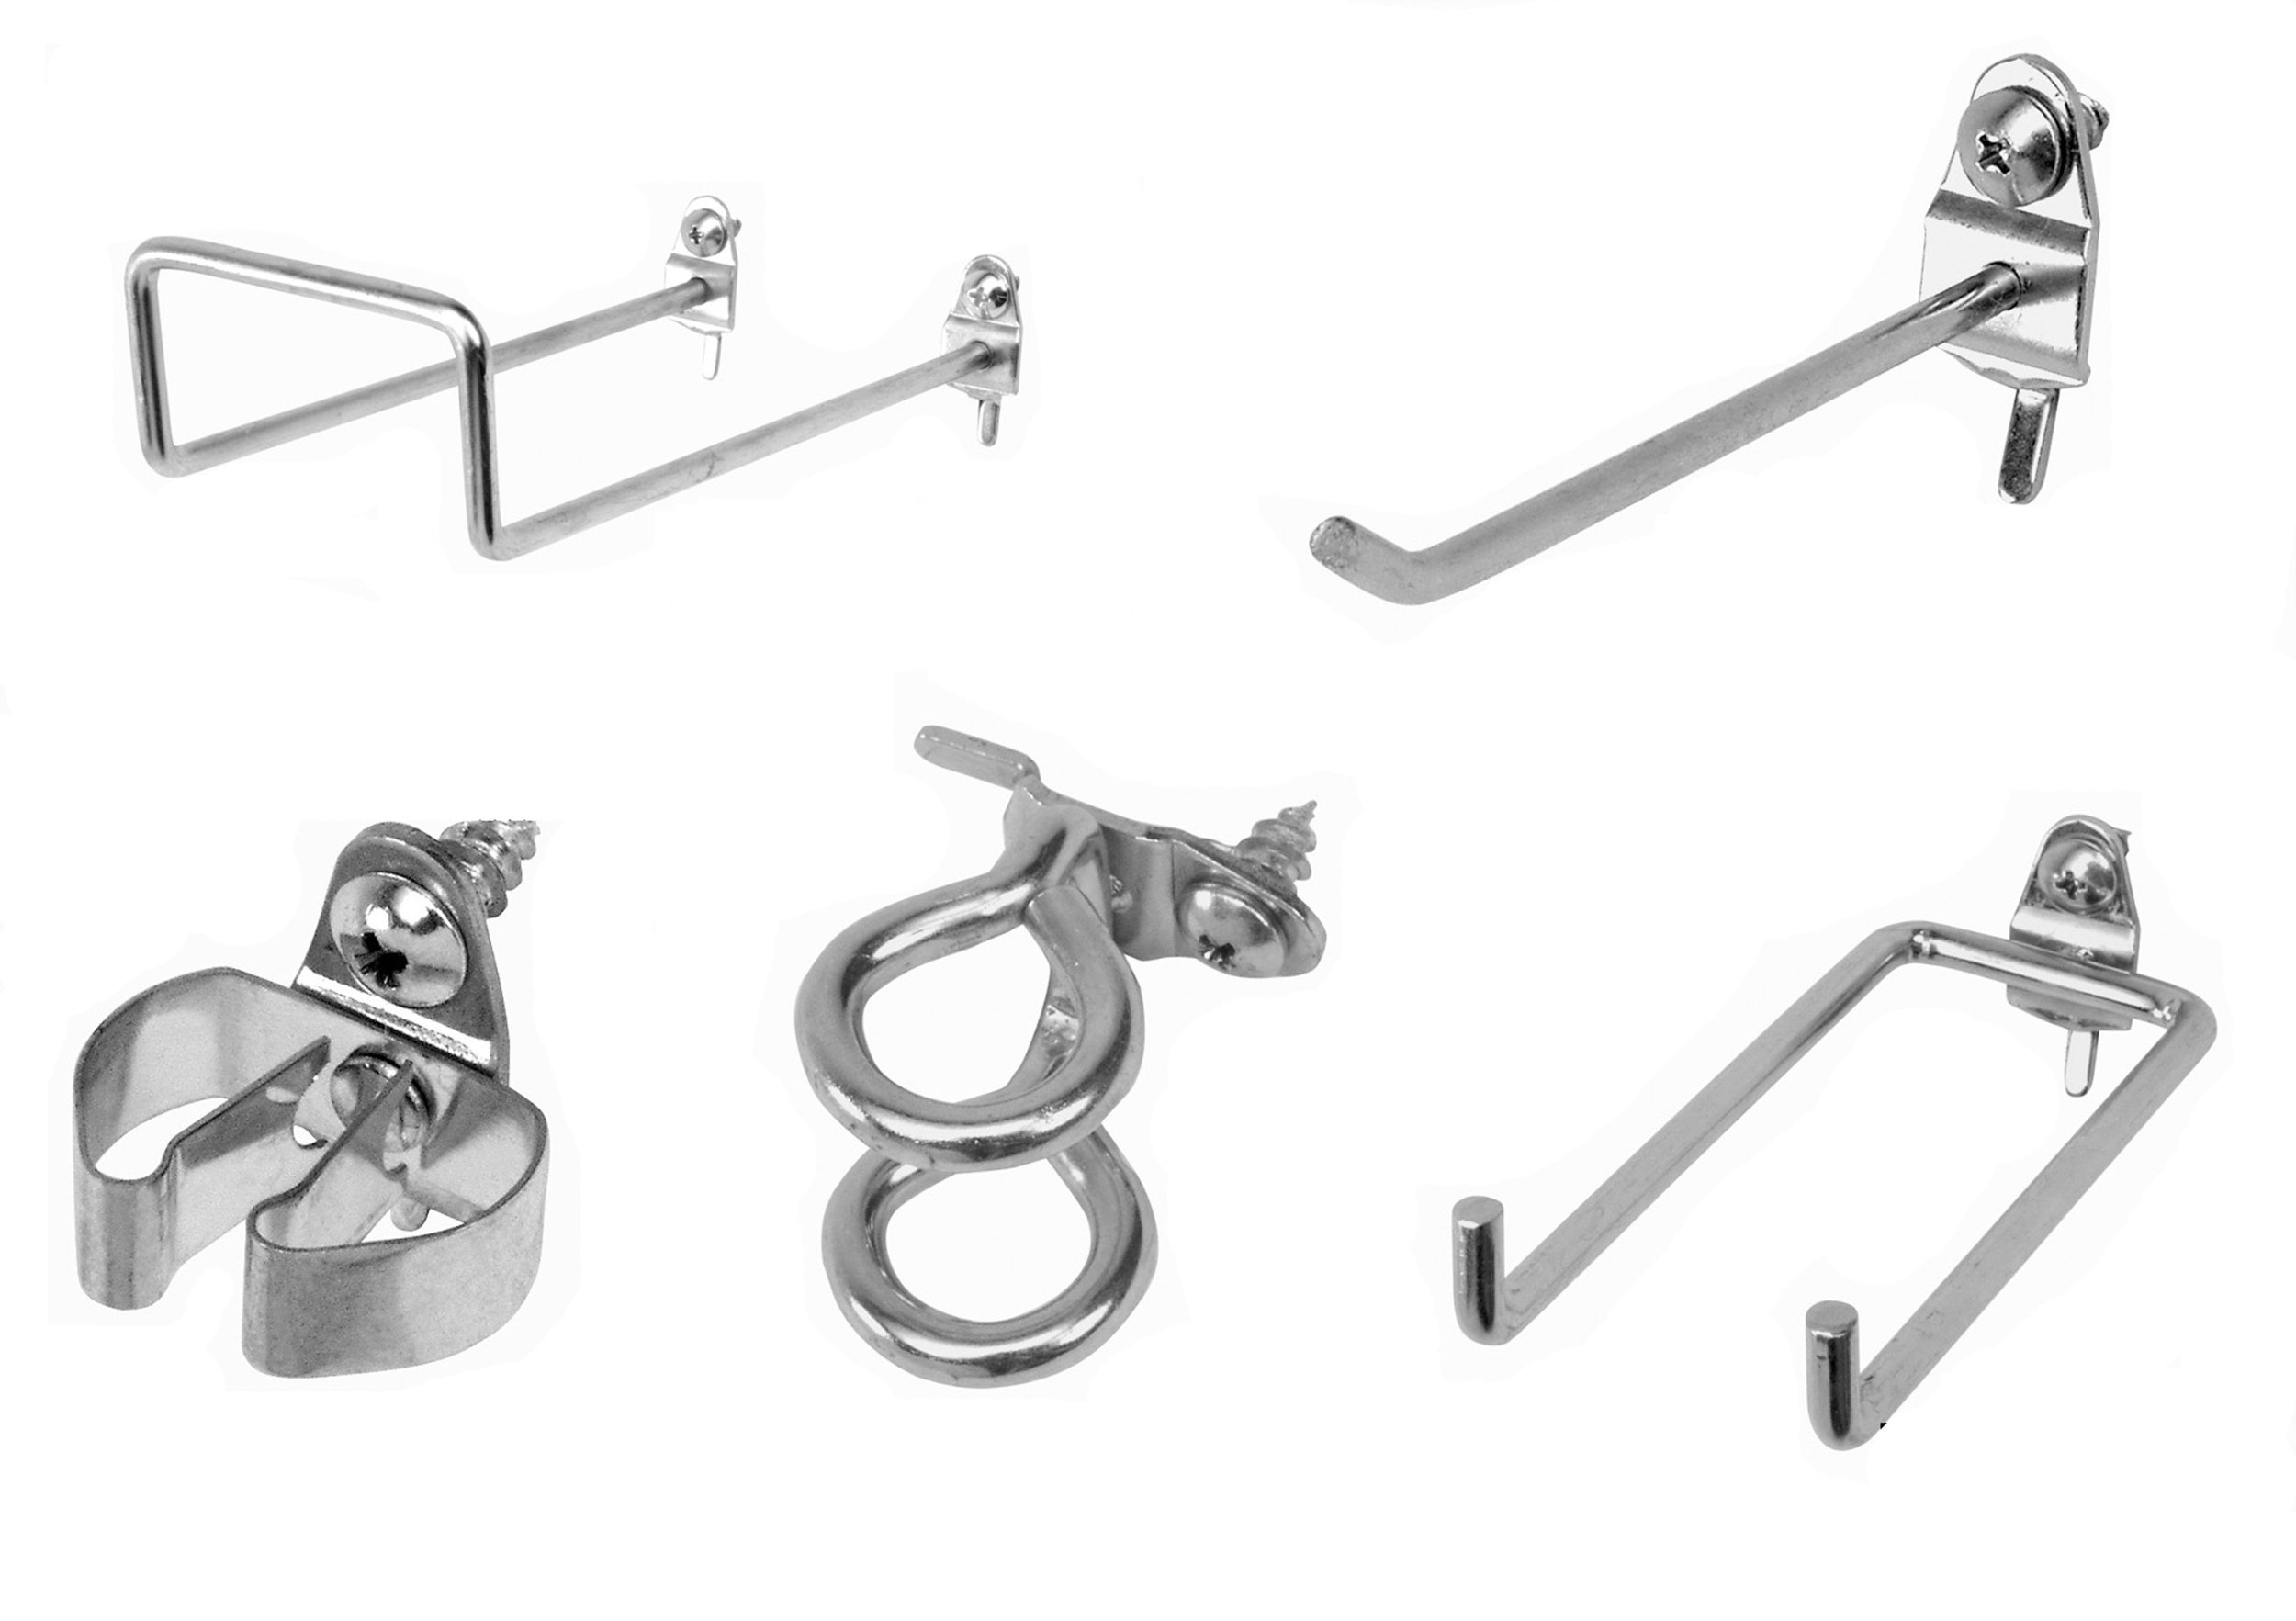 Triton Products 532-2 DuraHook 64 Pc Zinc Plated Steel Hook Assortment for DuraBoard or 1/8 Inch and 1/4 Inch Pegboard